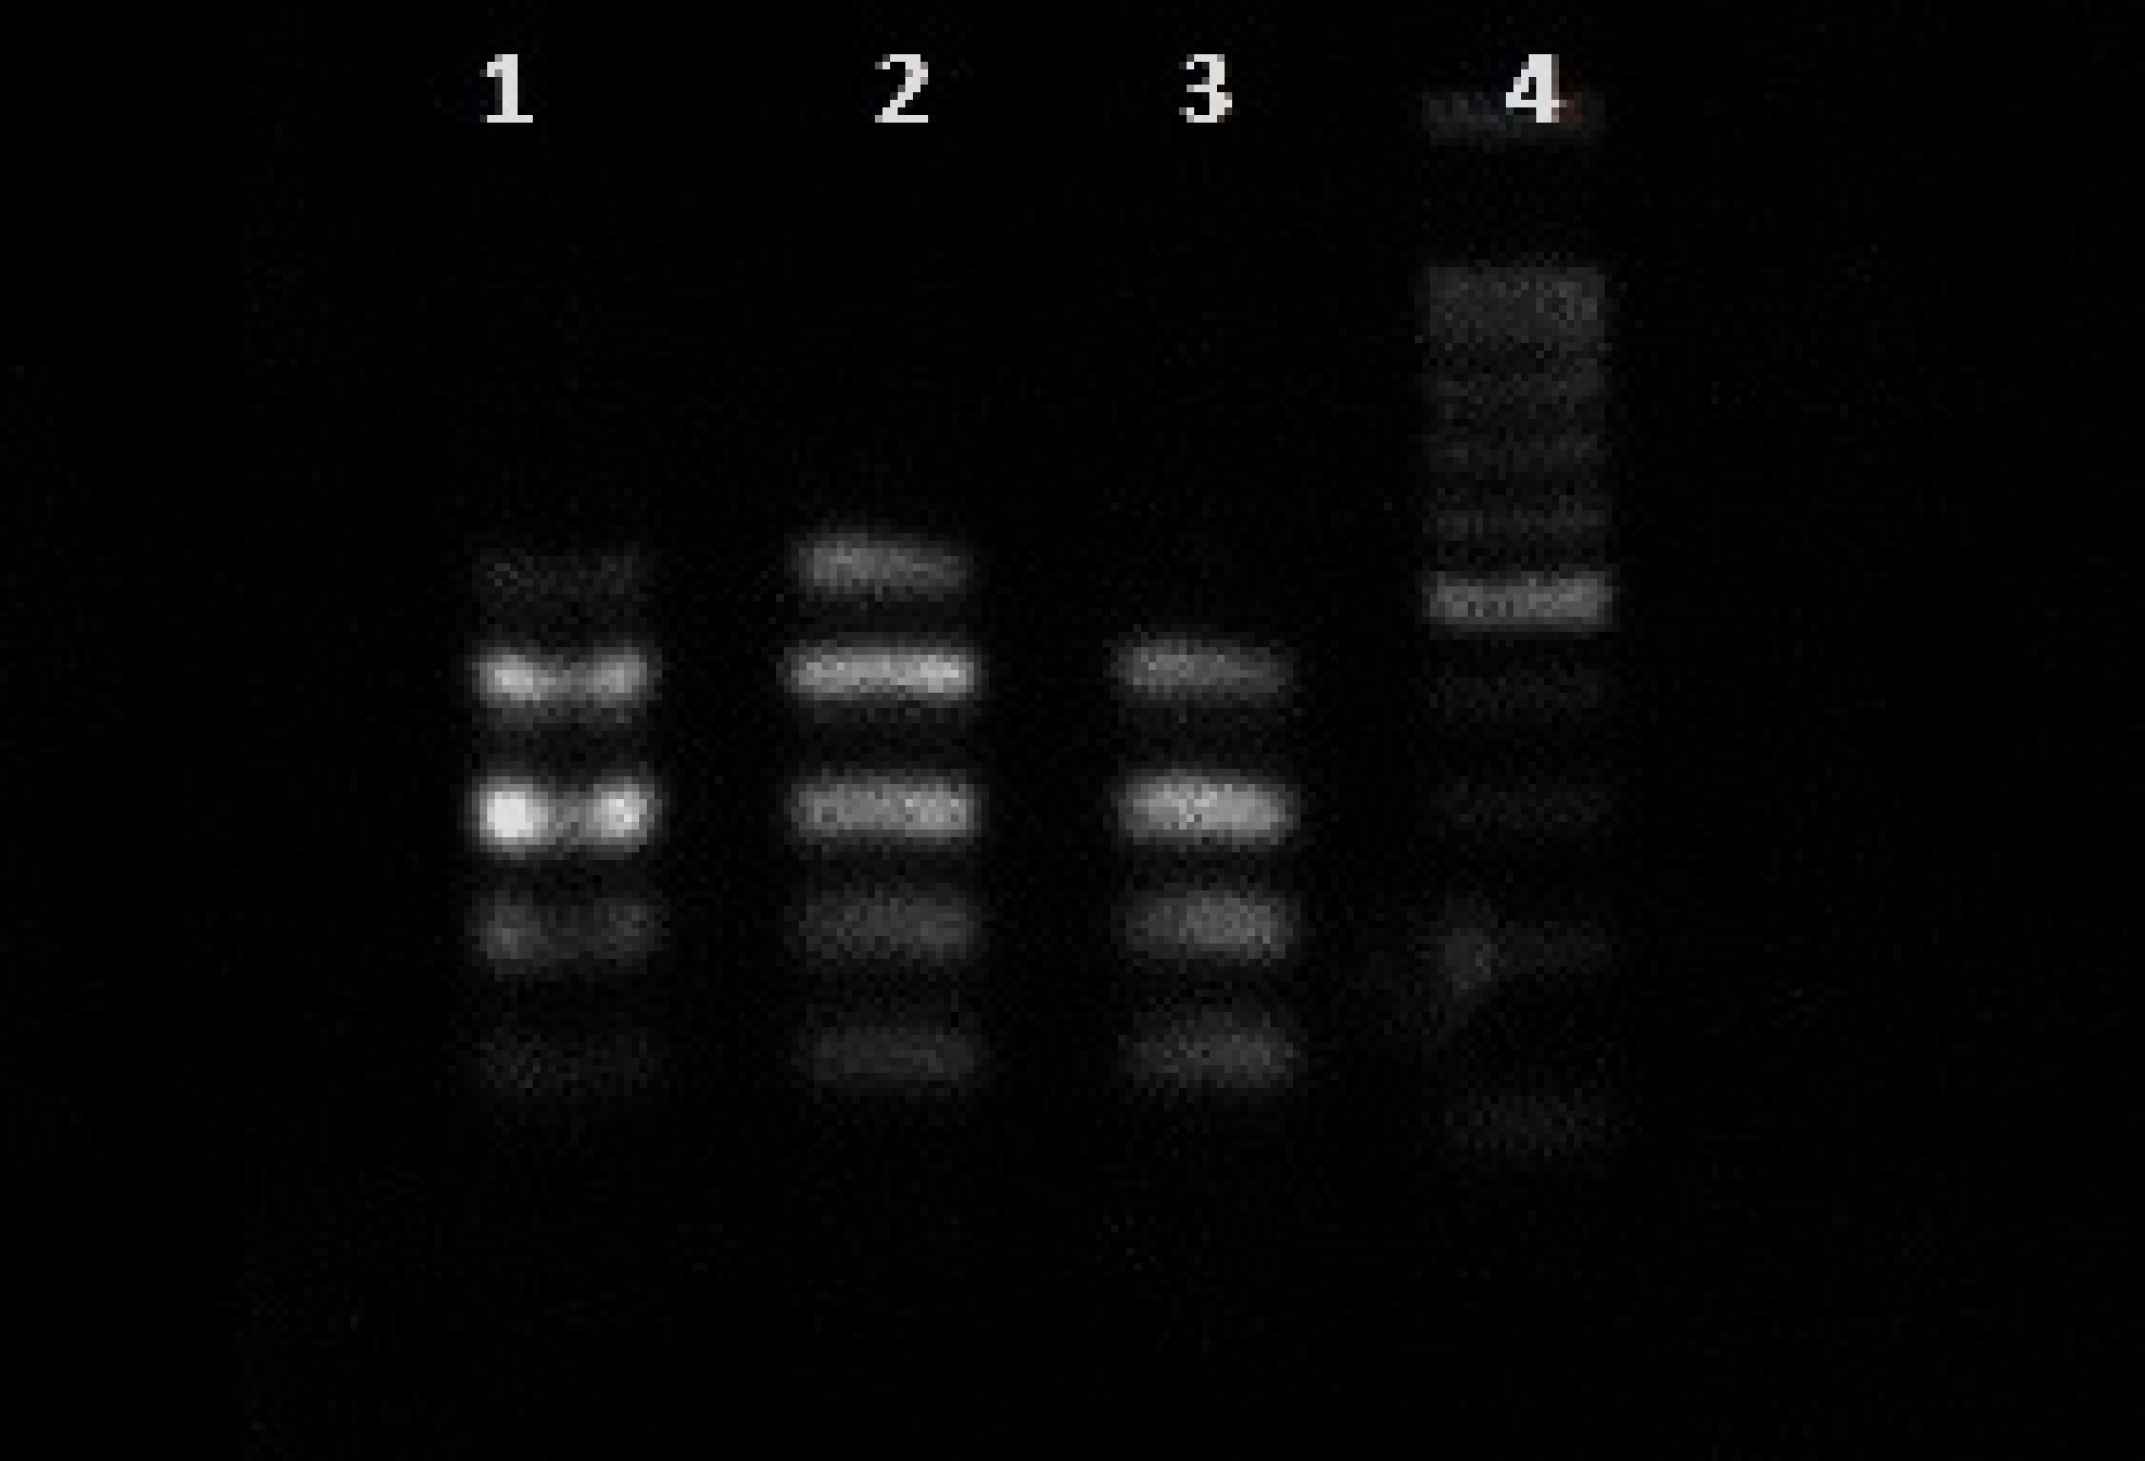 Products of multiplex for clfAB, fnbAB and fib genes. Columns 1 and 2: clfAB, fnbAB and fib genes. Column 4: marker